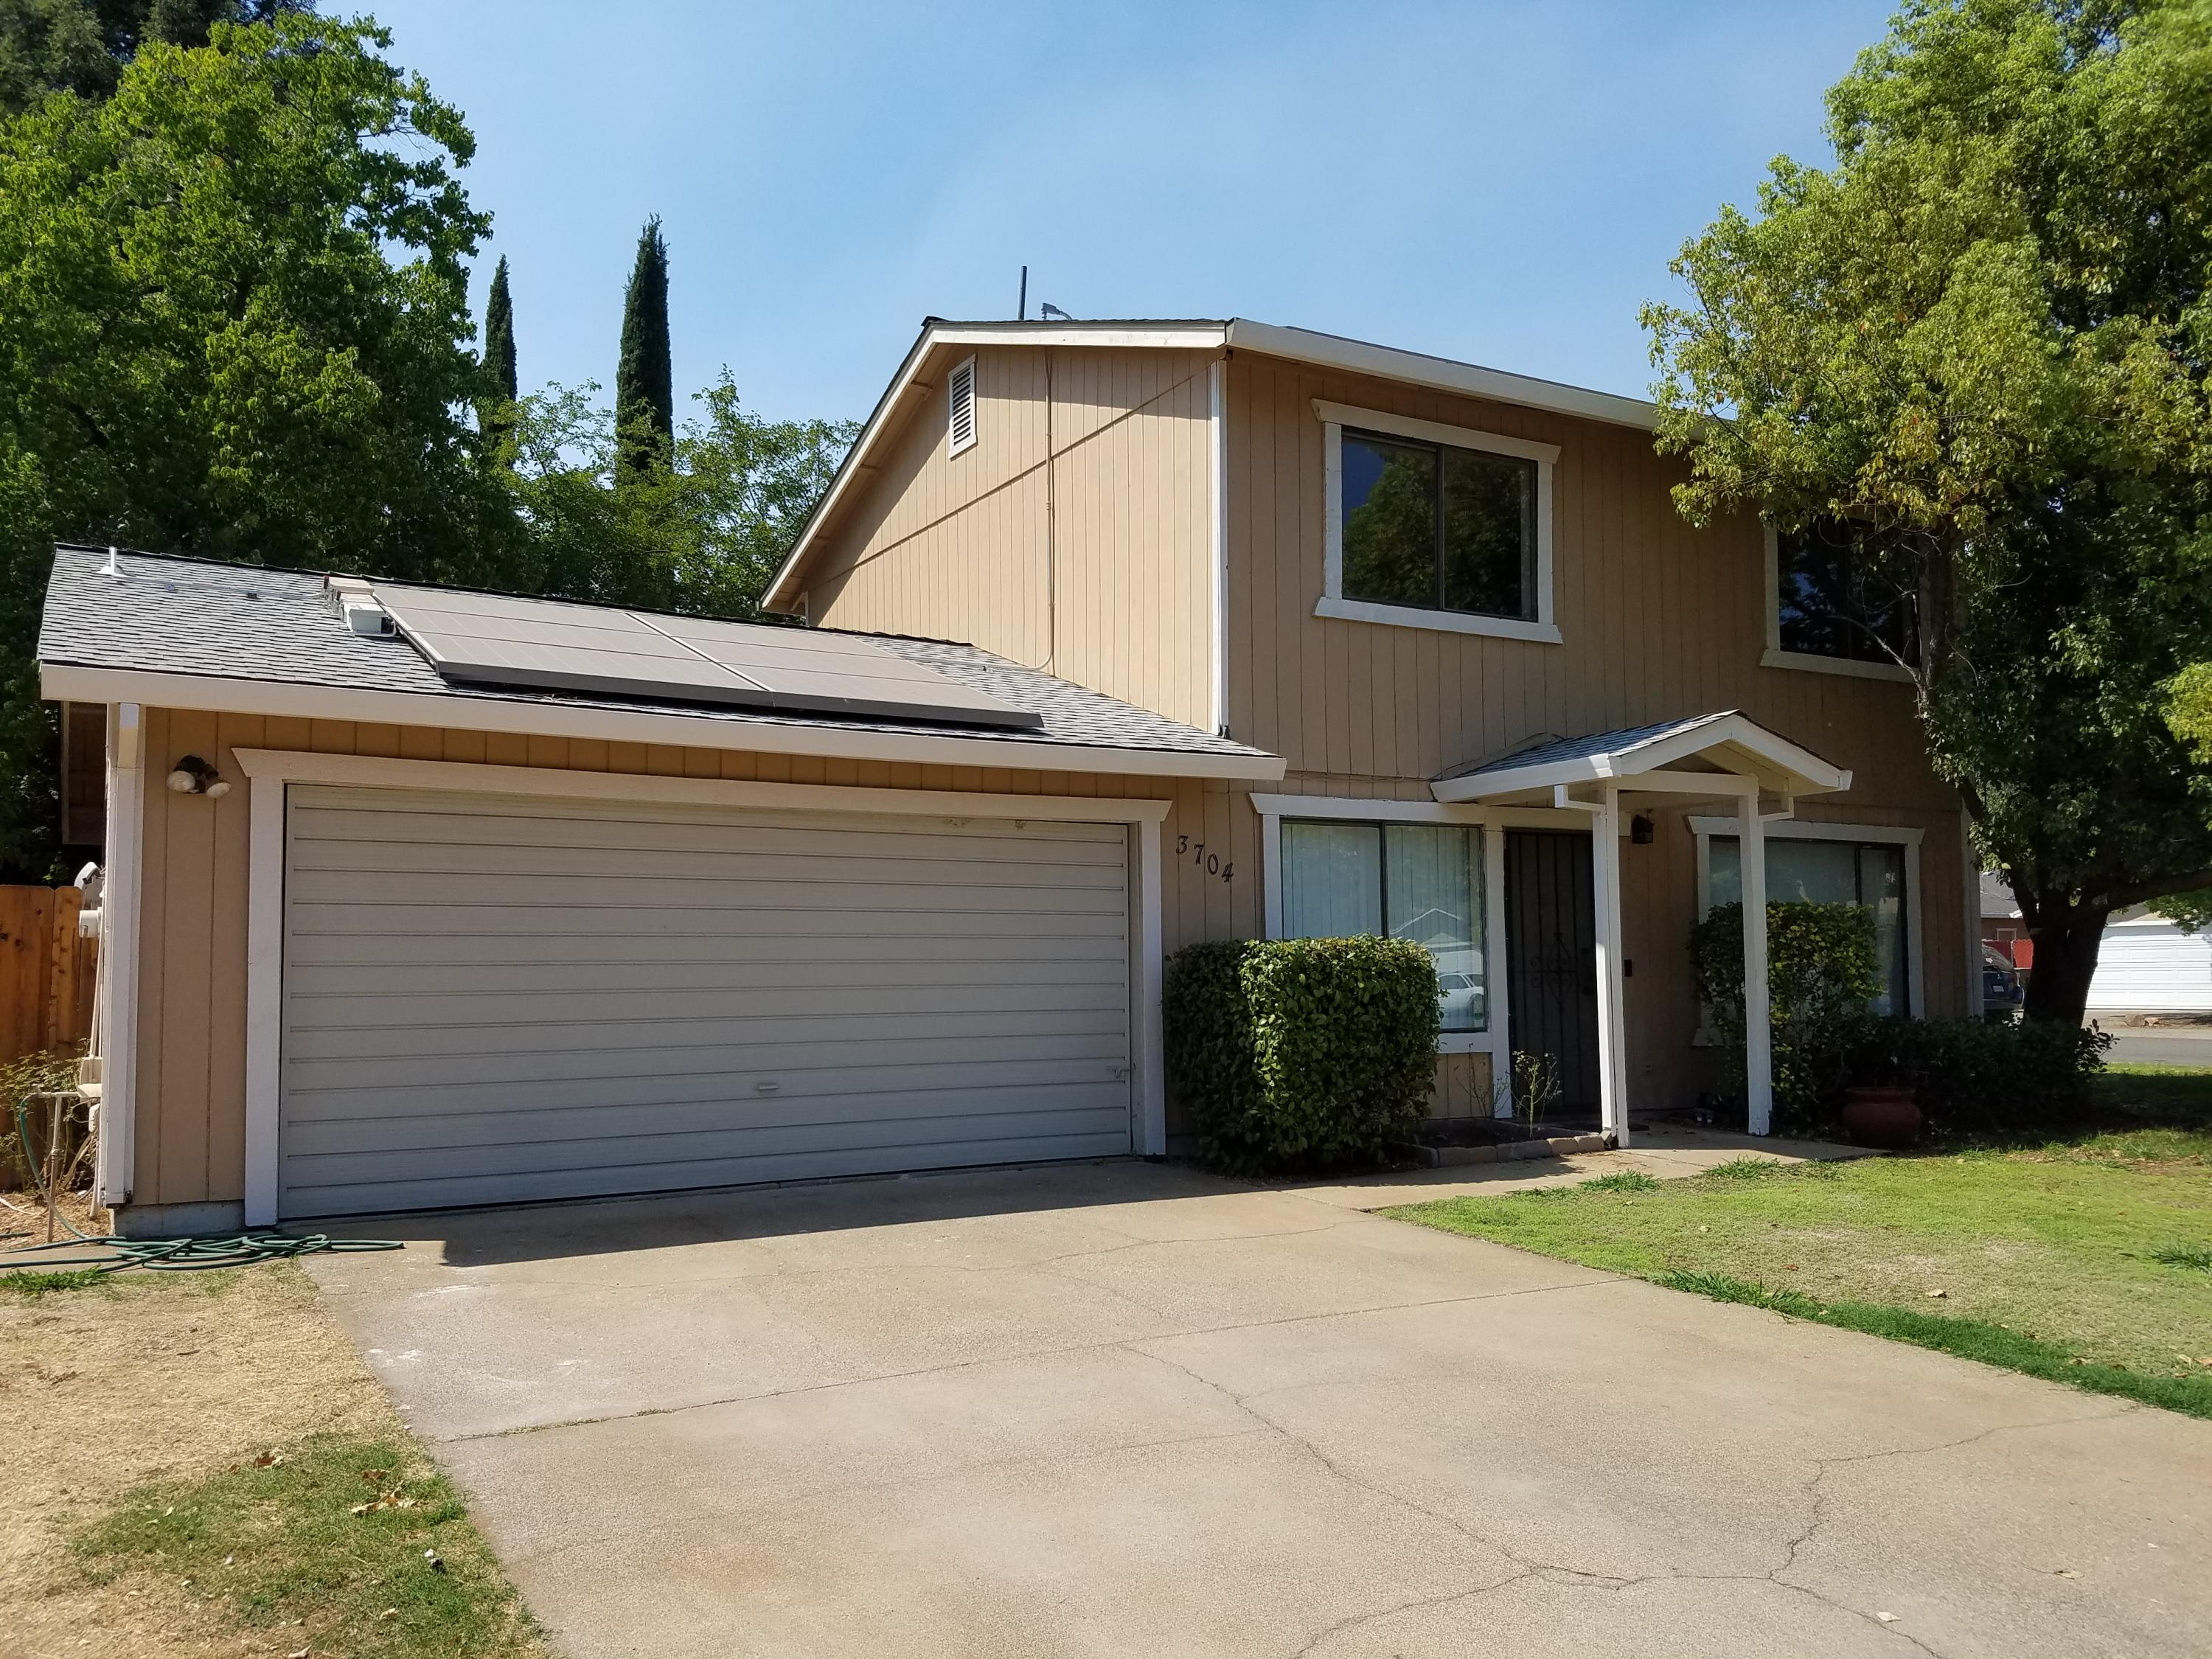 3704 Pluto St, Redding, CA 96002